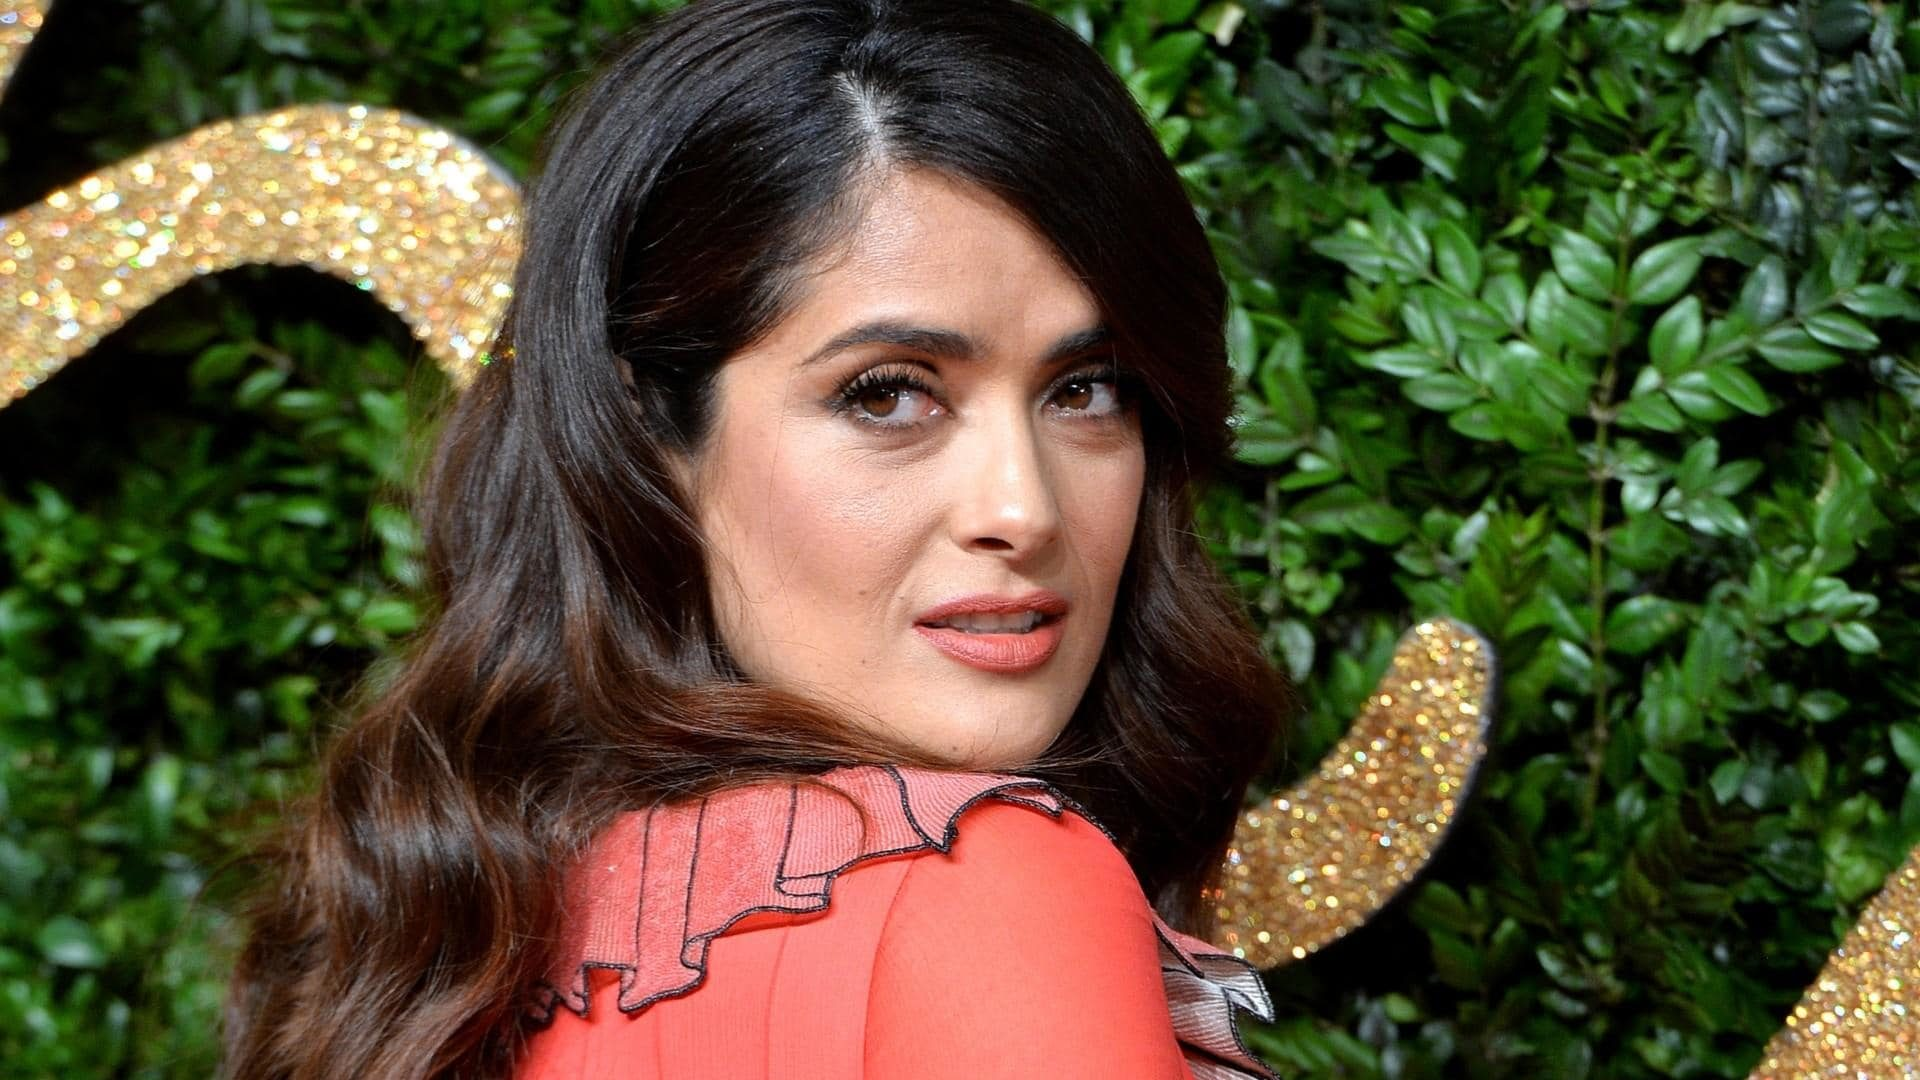 Marvel The Eternals Will Salma Hayek Be A Part Of It The Geek